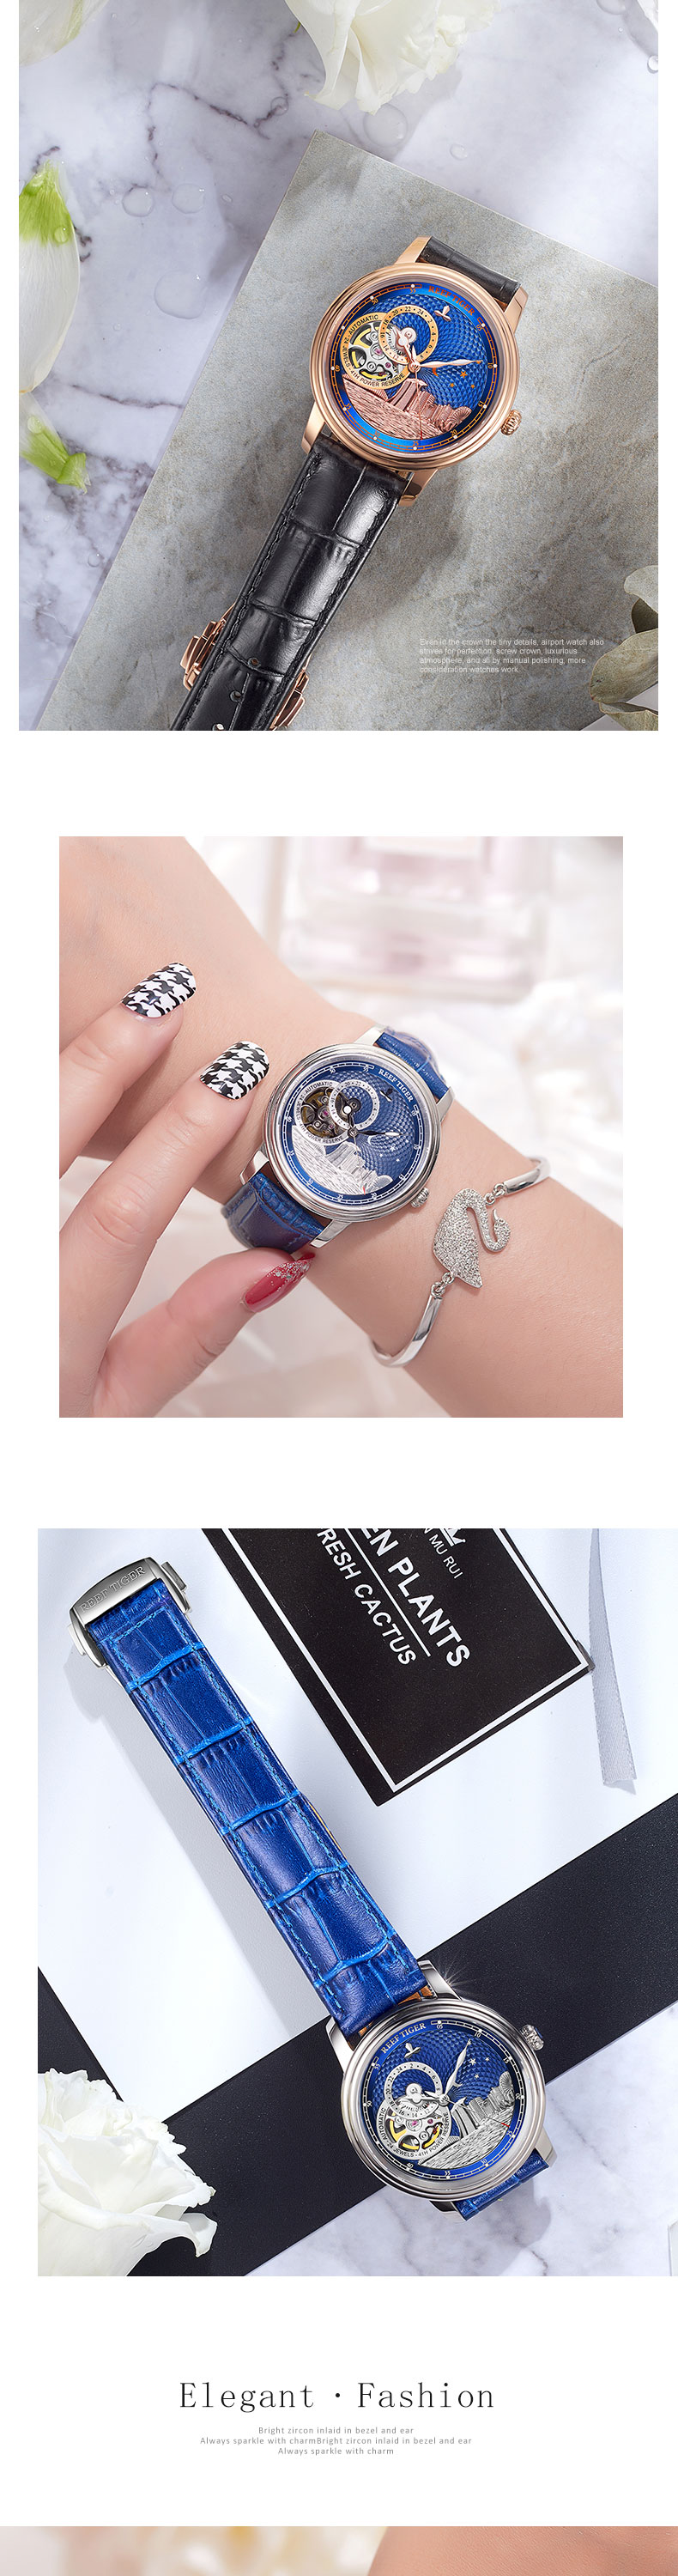 Reef Tiger/RT Blue Tourbillon Automatic Watch Luxury Fashion Watch for Women Men Unisex Watches 2019 New Clock Reloj RGA1739